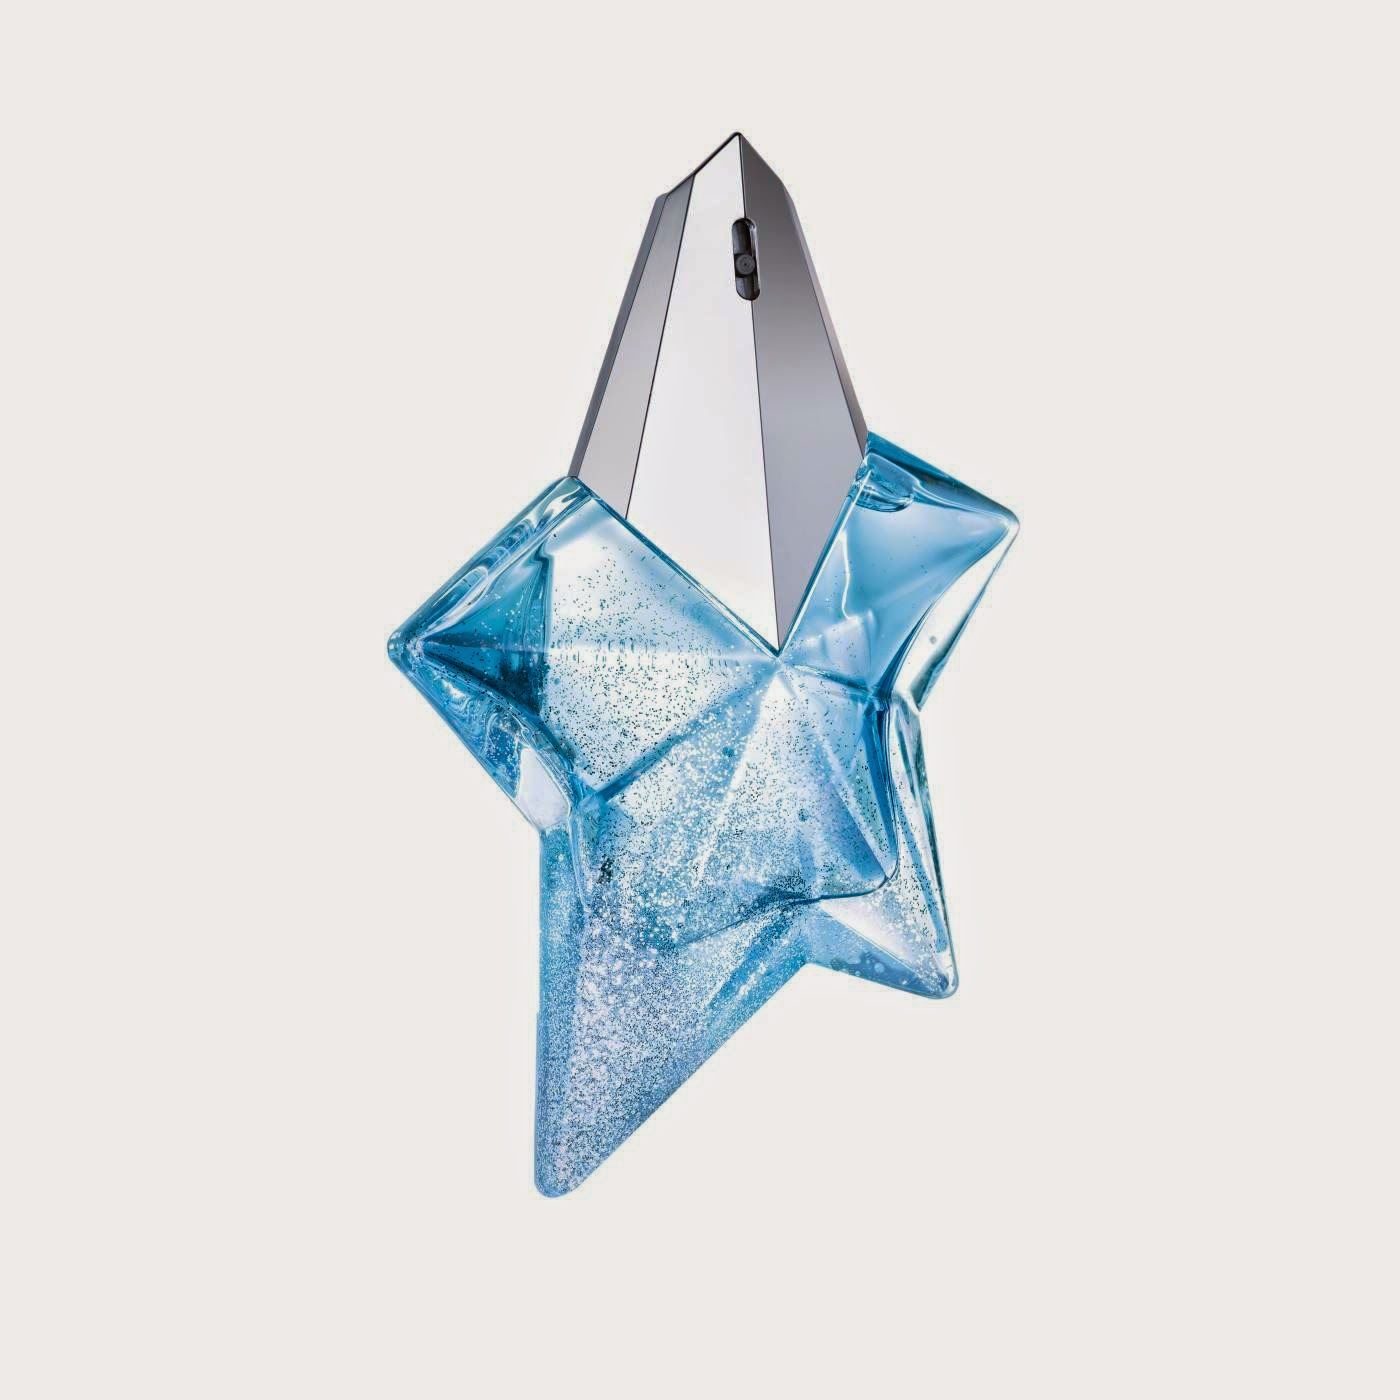 My new go to fragrance alien by thierry mugler misadventures in playful yet chic this limited edition eau de toilette blends mischievous charm with mouthwatering facets comprised of red fruits caramelized meringue jeuxipadfo Images